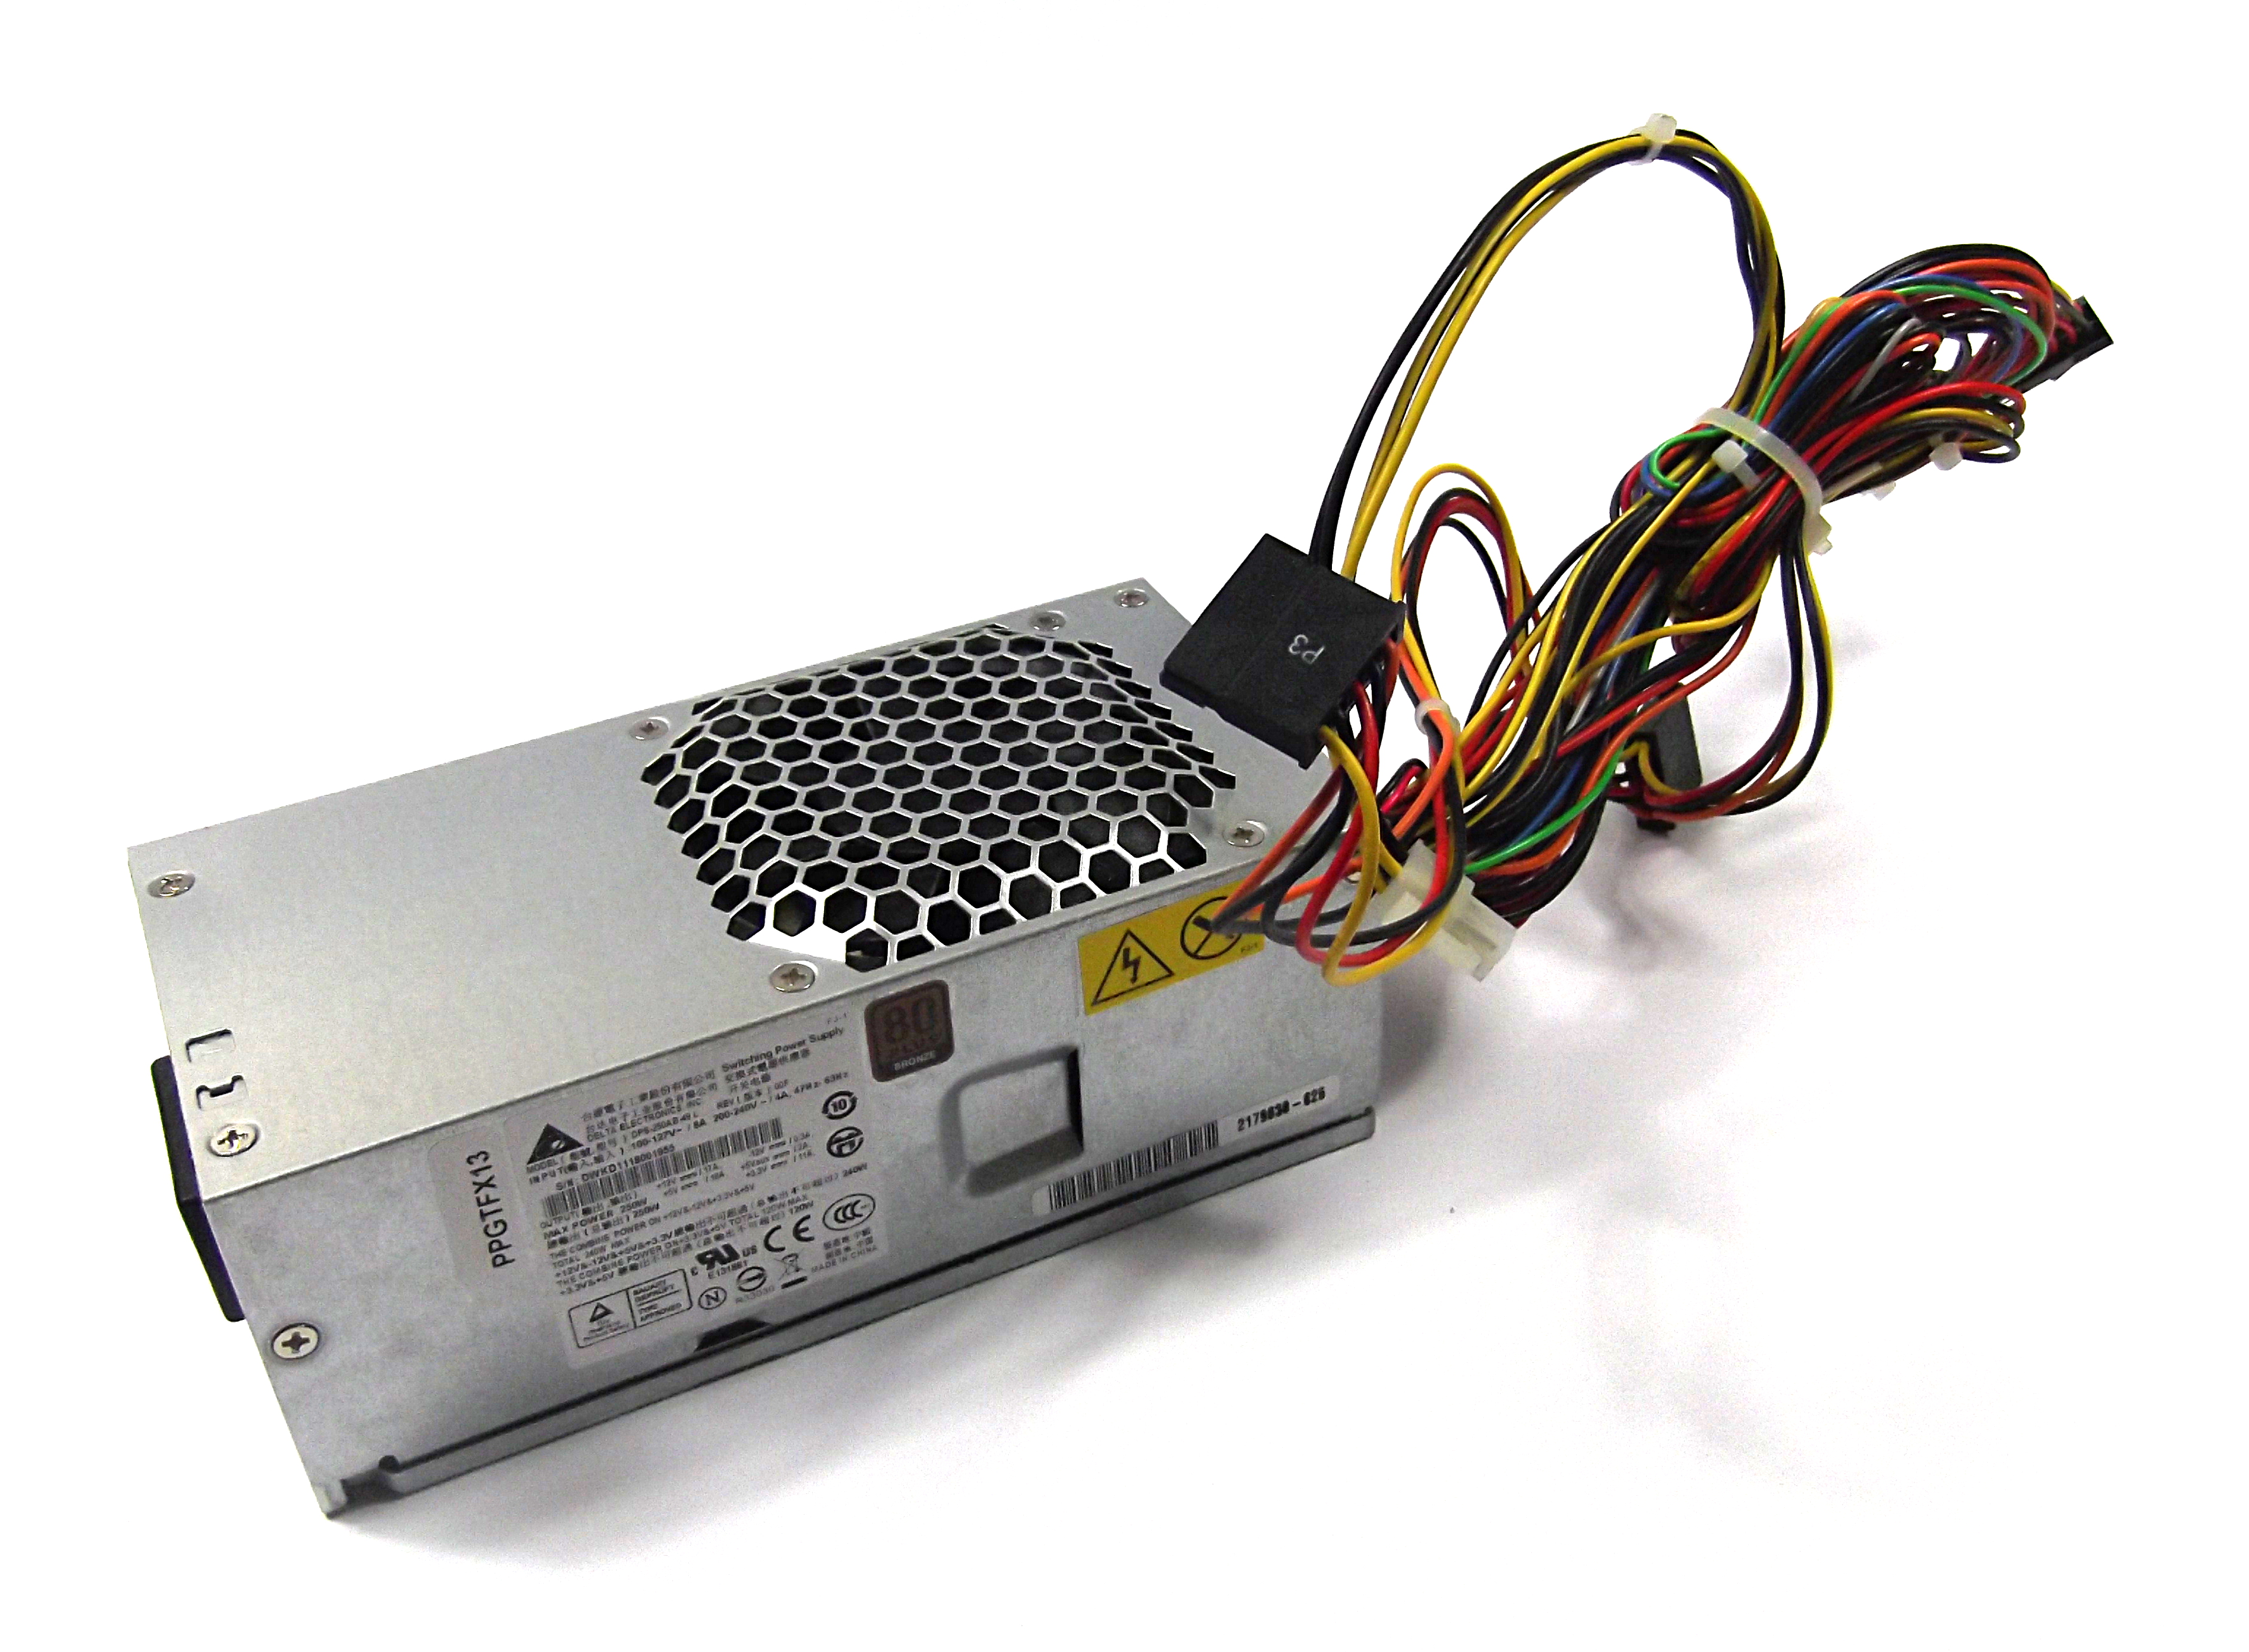 Delta DPS-250AB-49 L 80+ Bronze 240W 20/24 Pin Power Supply